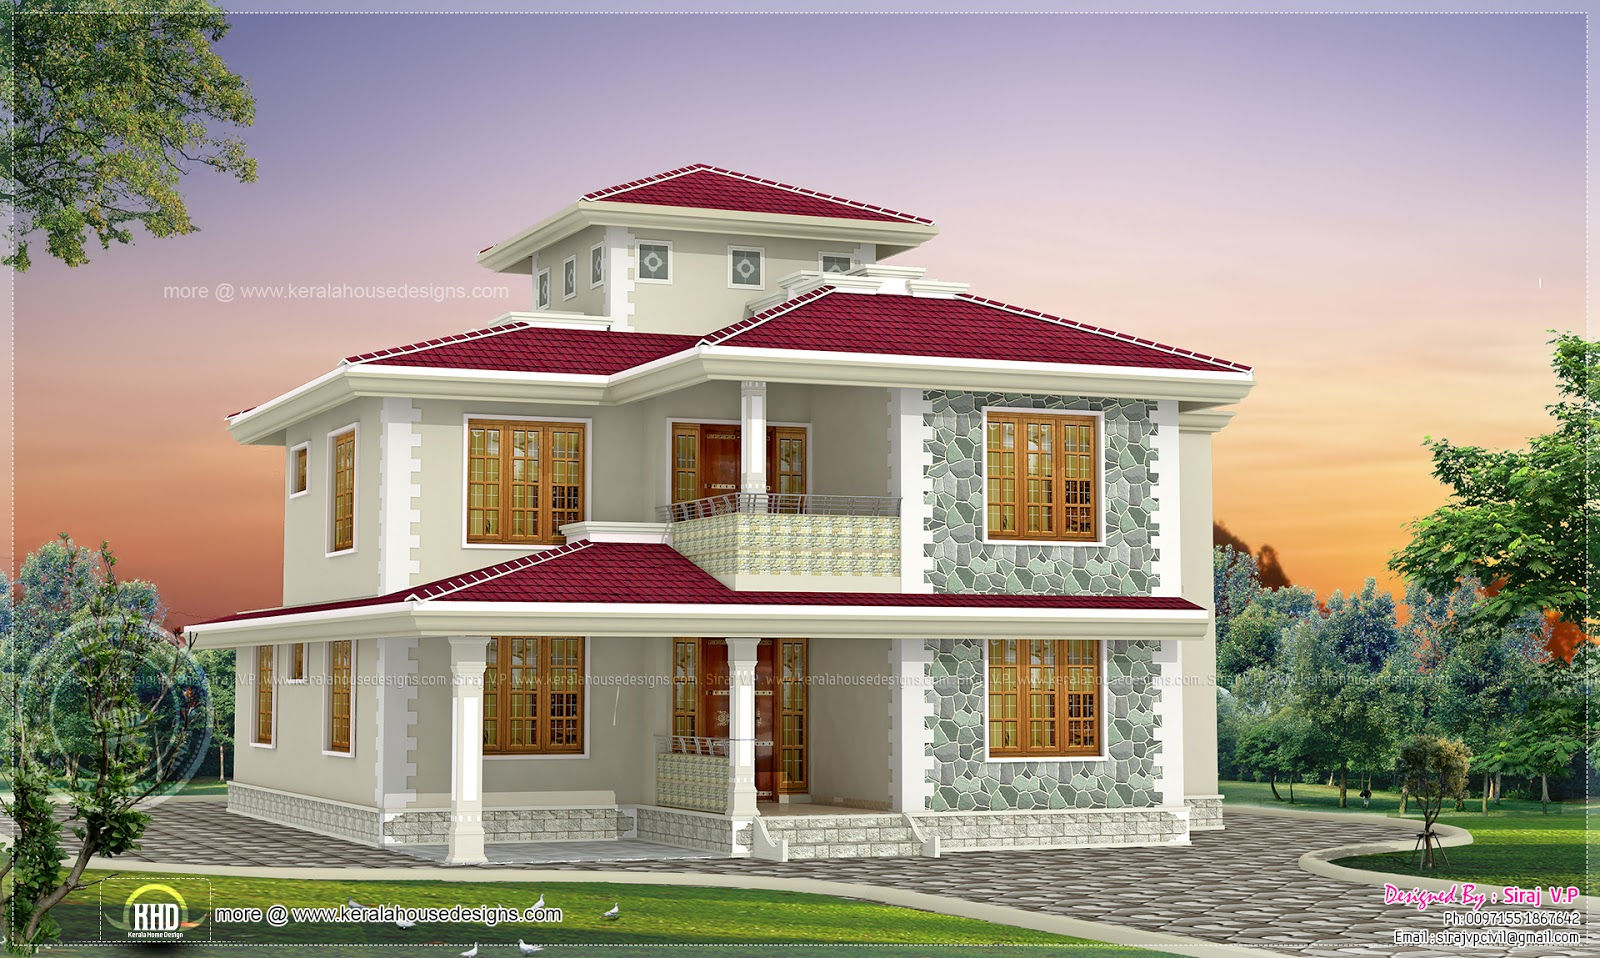 4 bhk kerala style home design kerala home design and for 4 bedroom house plans kerala style architect